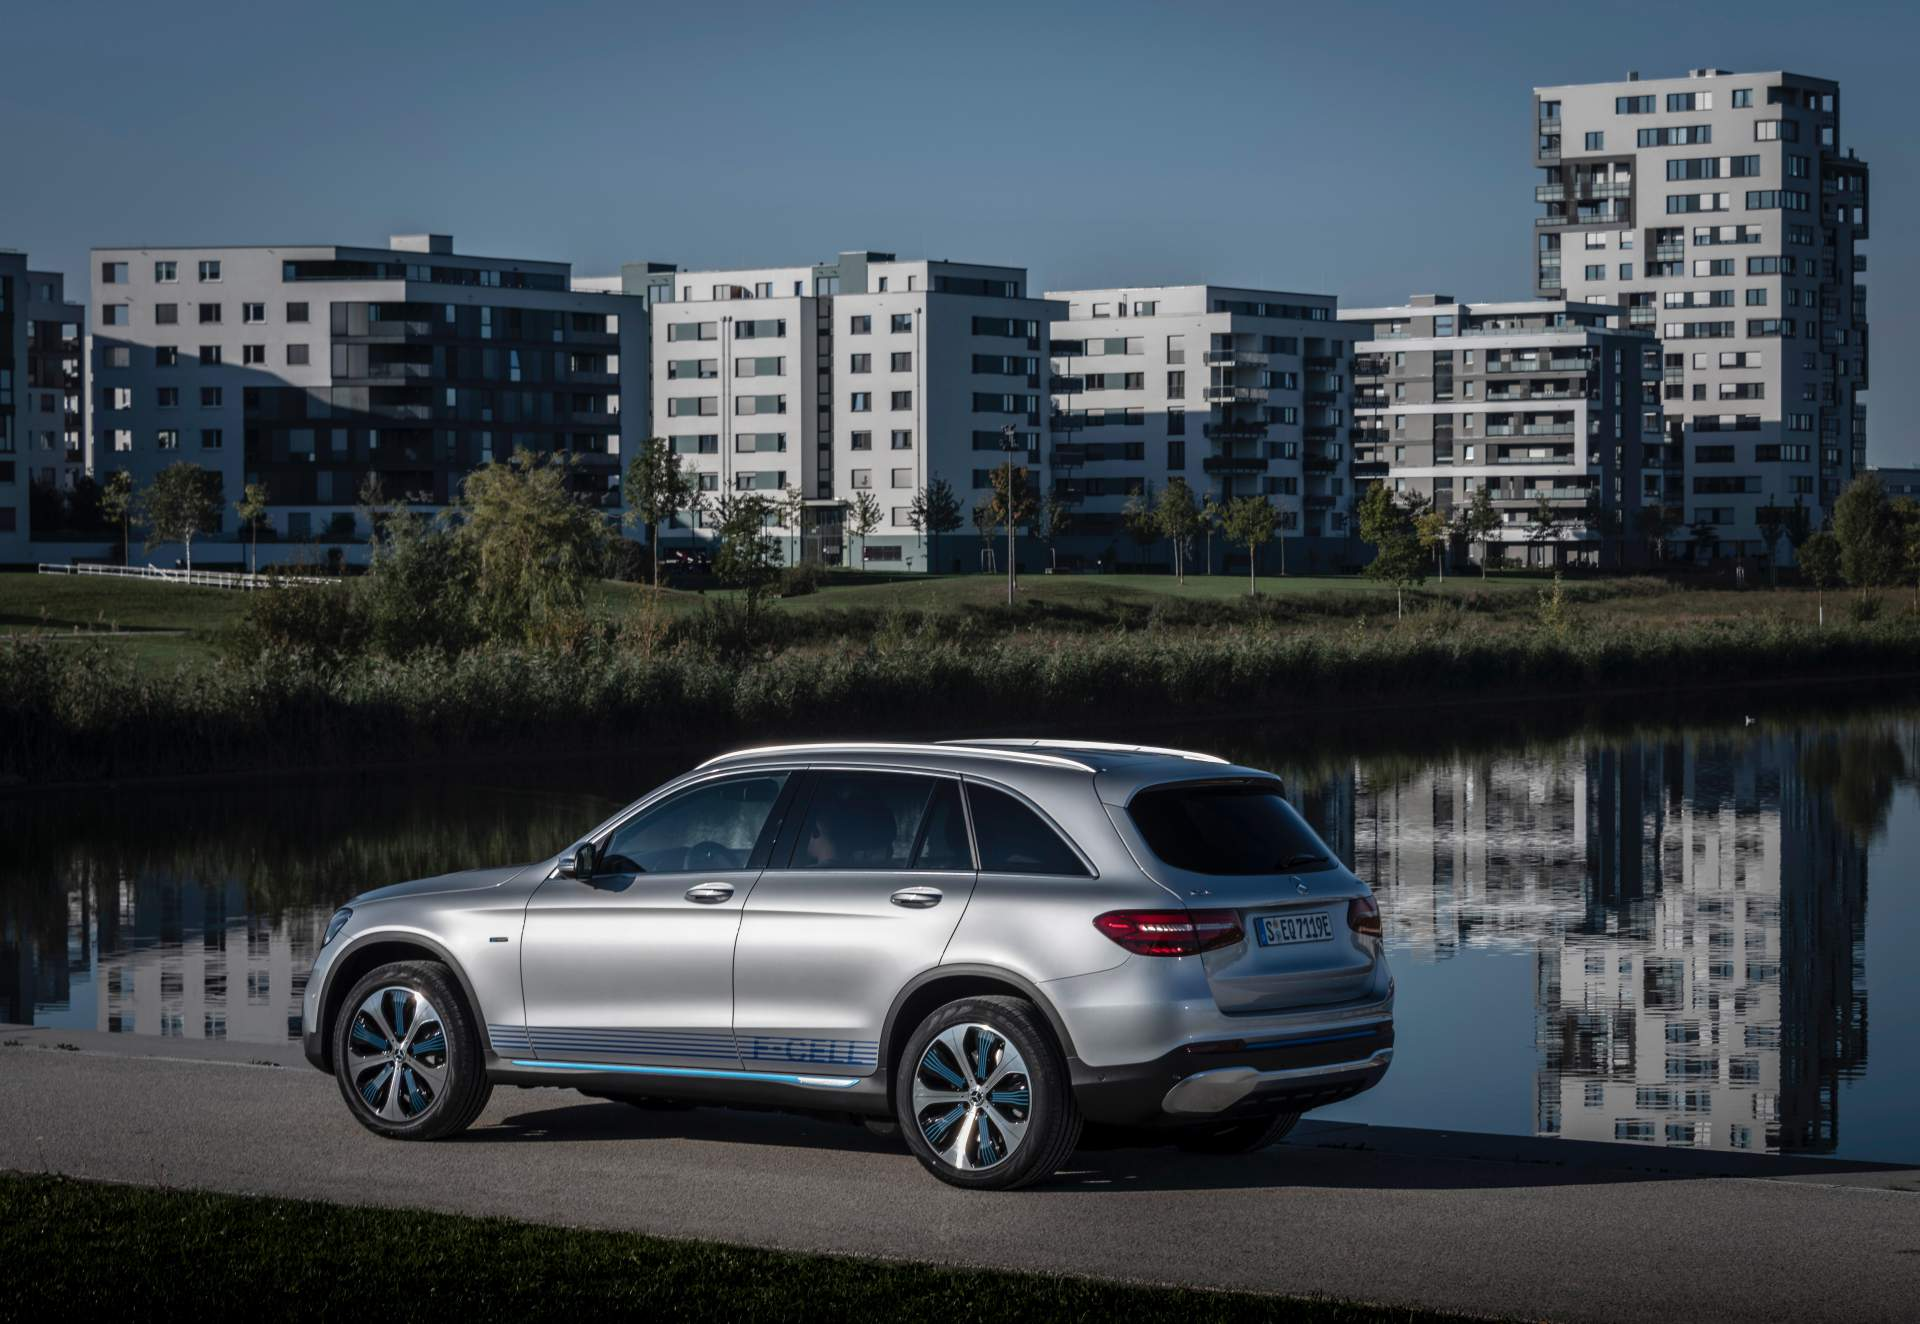 2019_Mercedes_GLC_F-Cell_0066